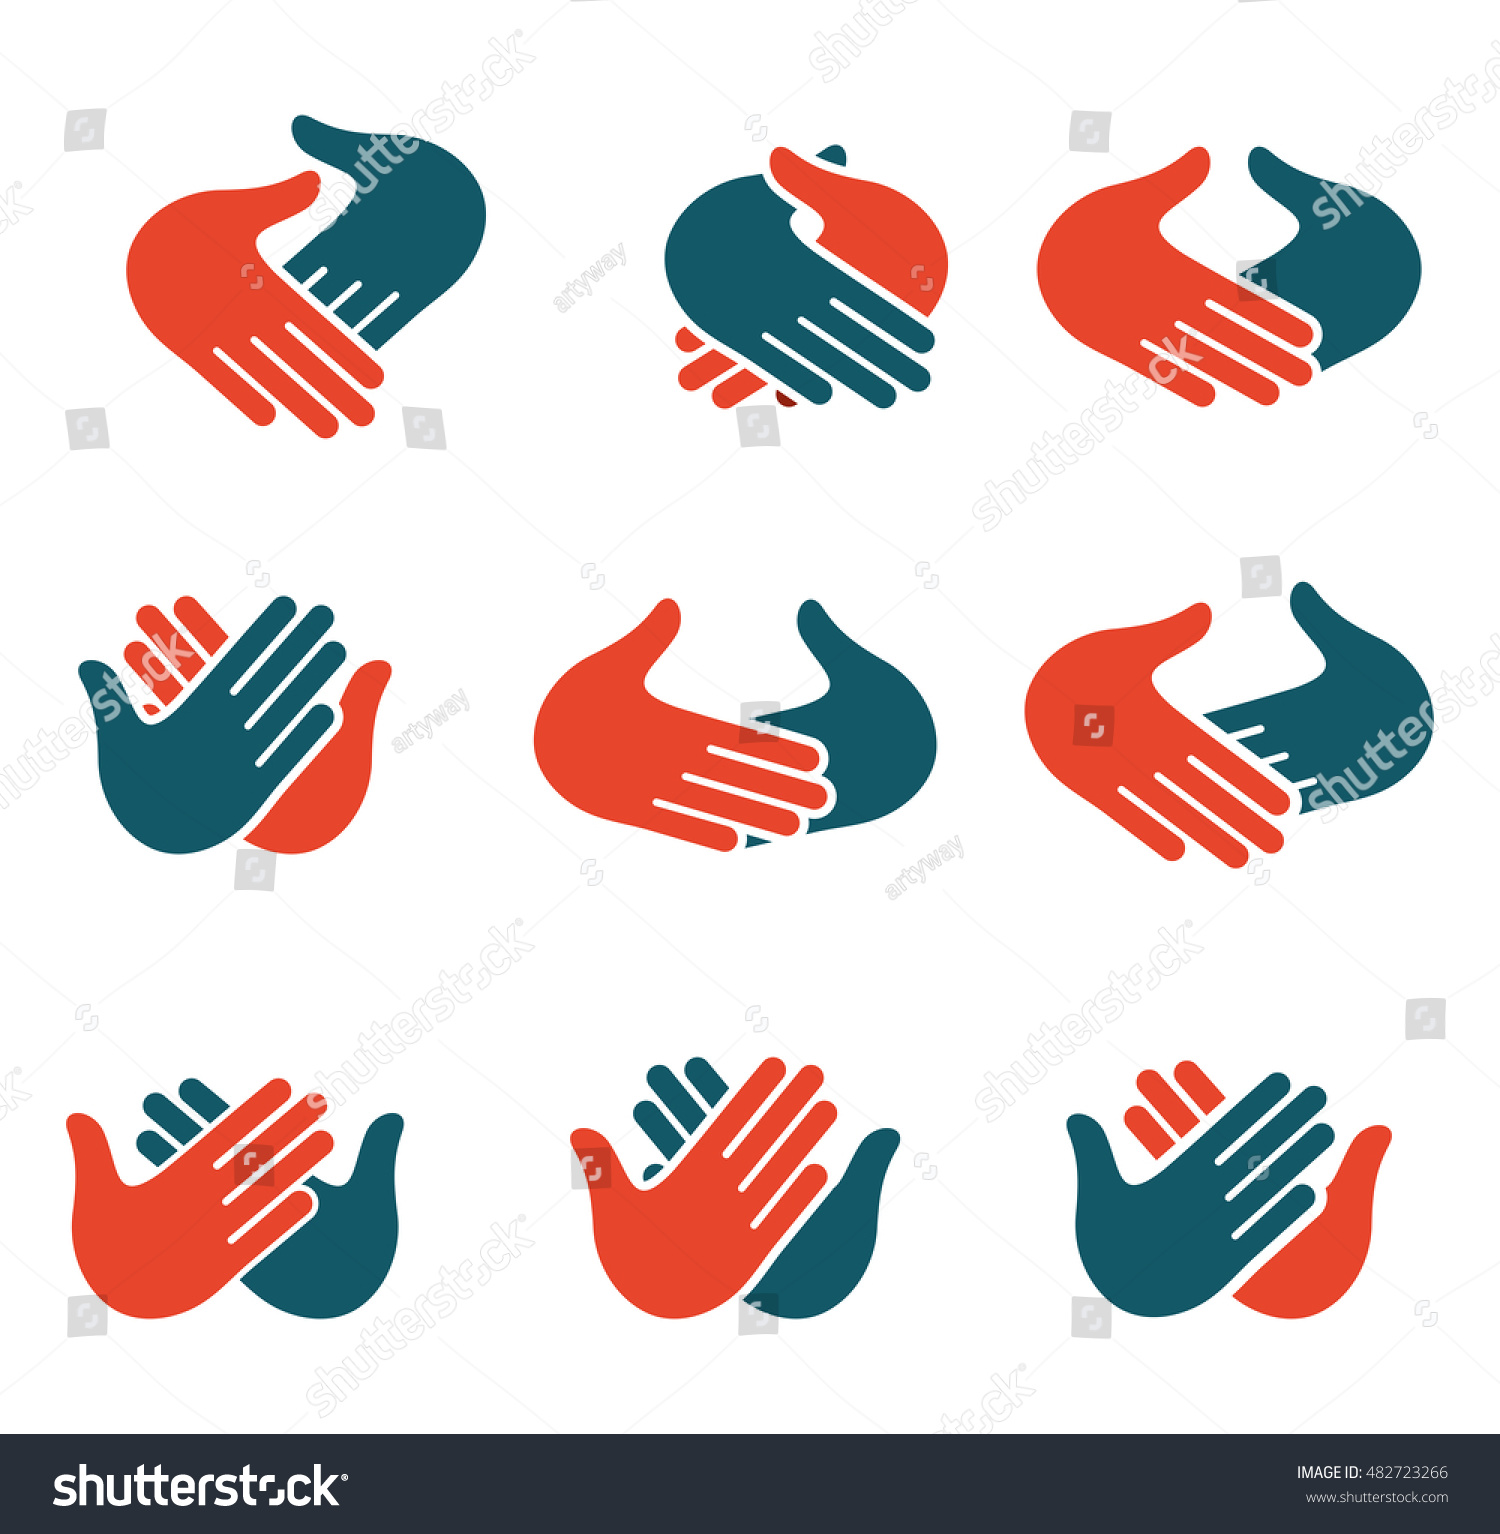 isolated abstract clapping hands logo set stock vector 2018 rh shutterstock com shaking hands logo vector shaking hands logo images